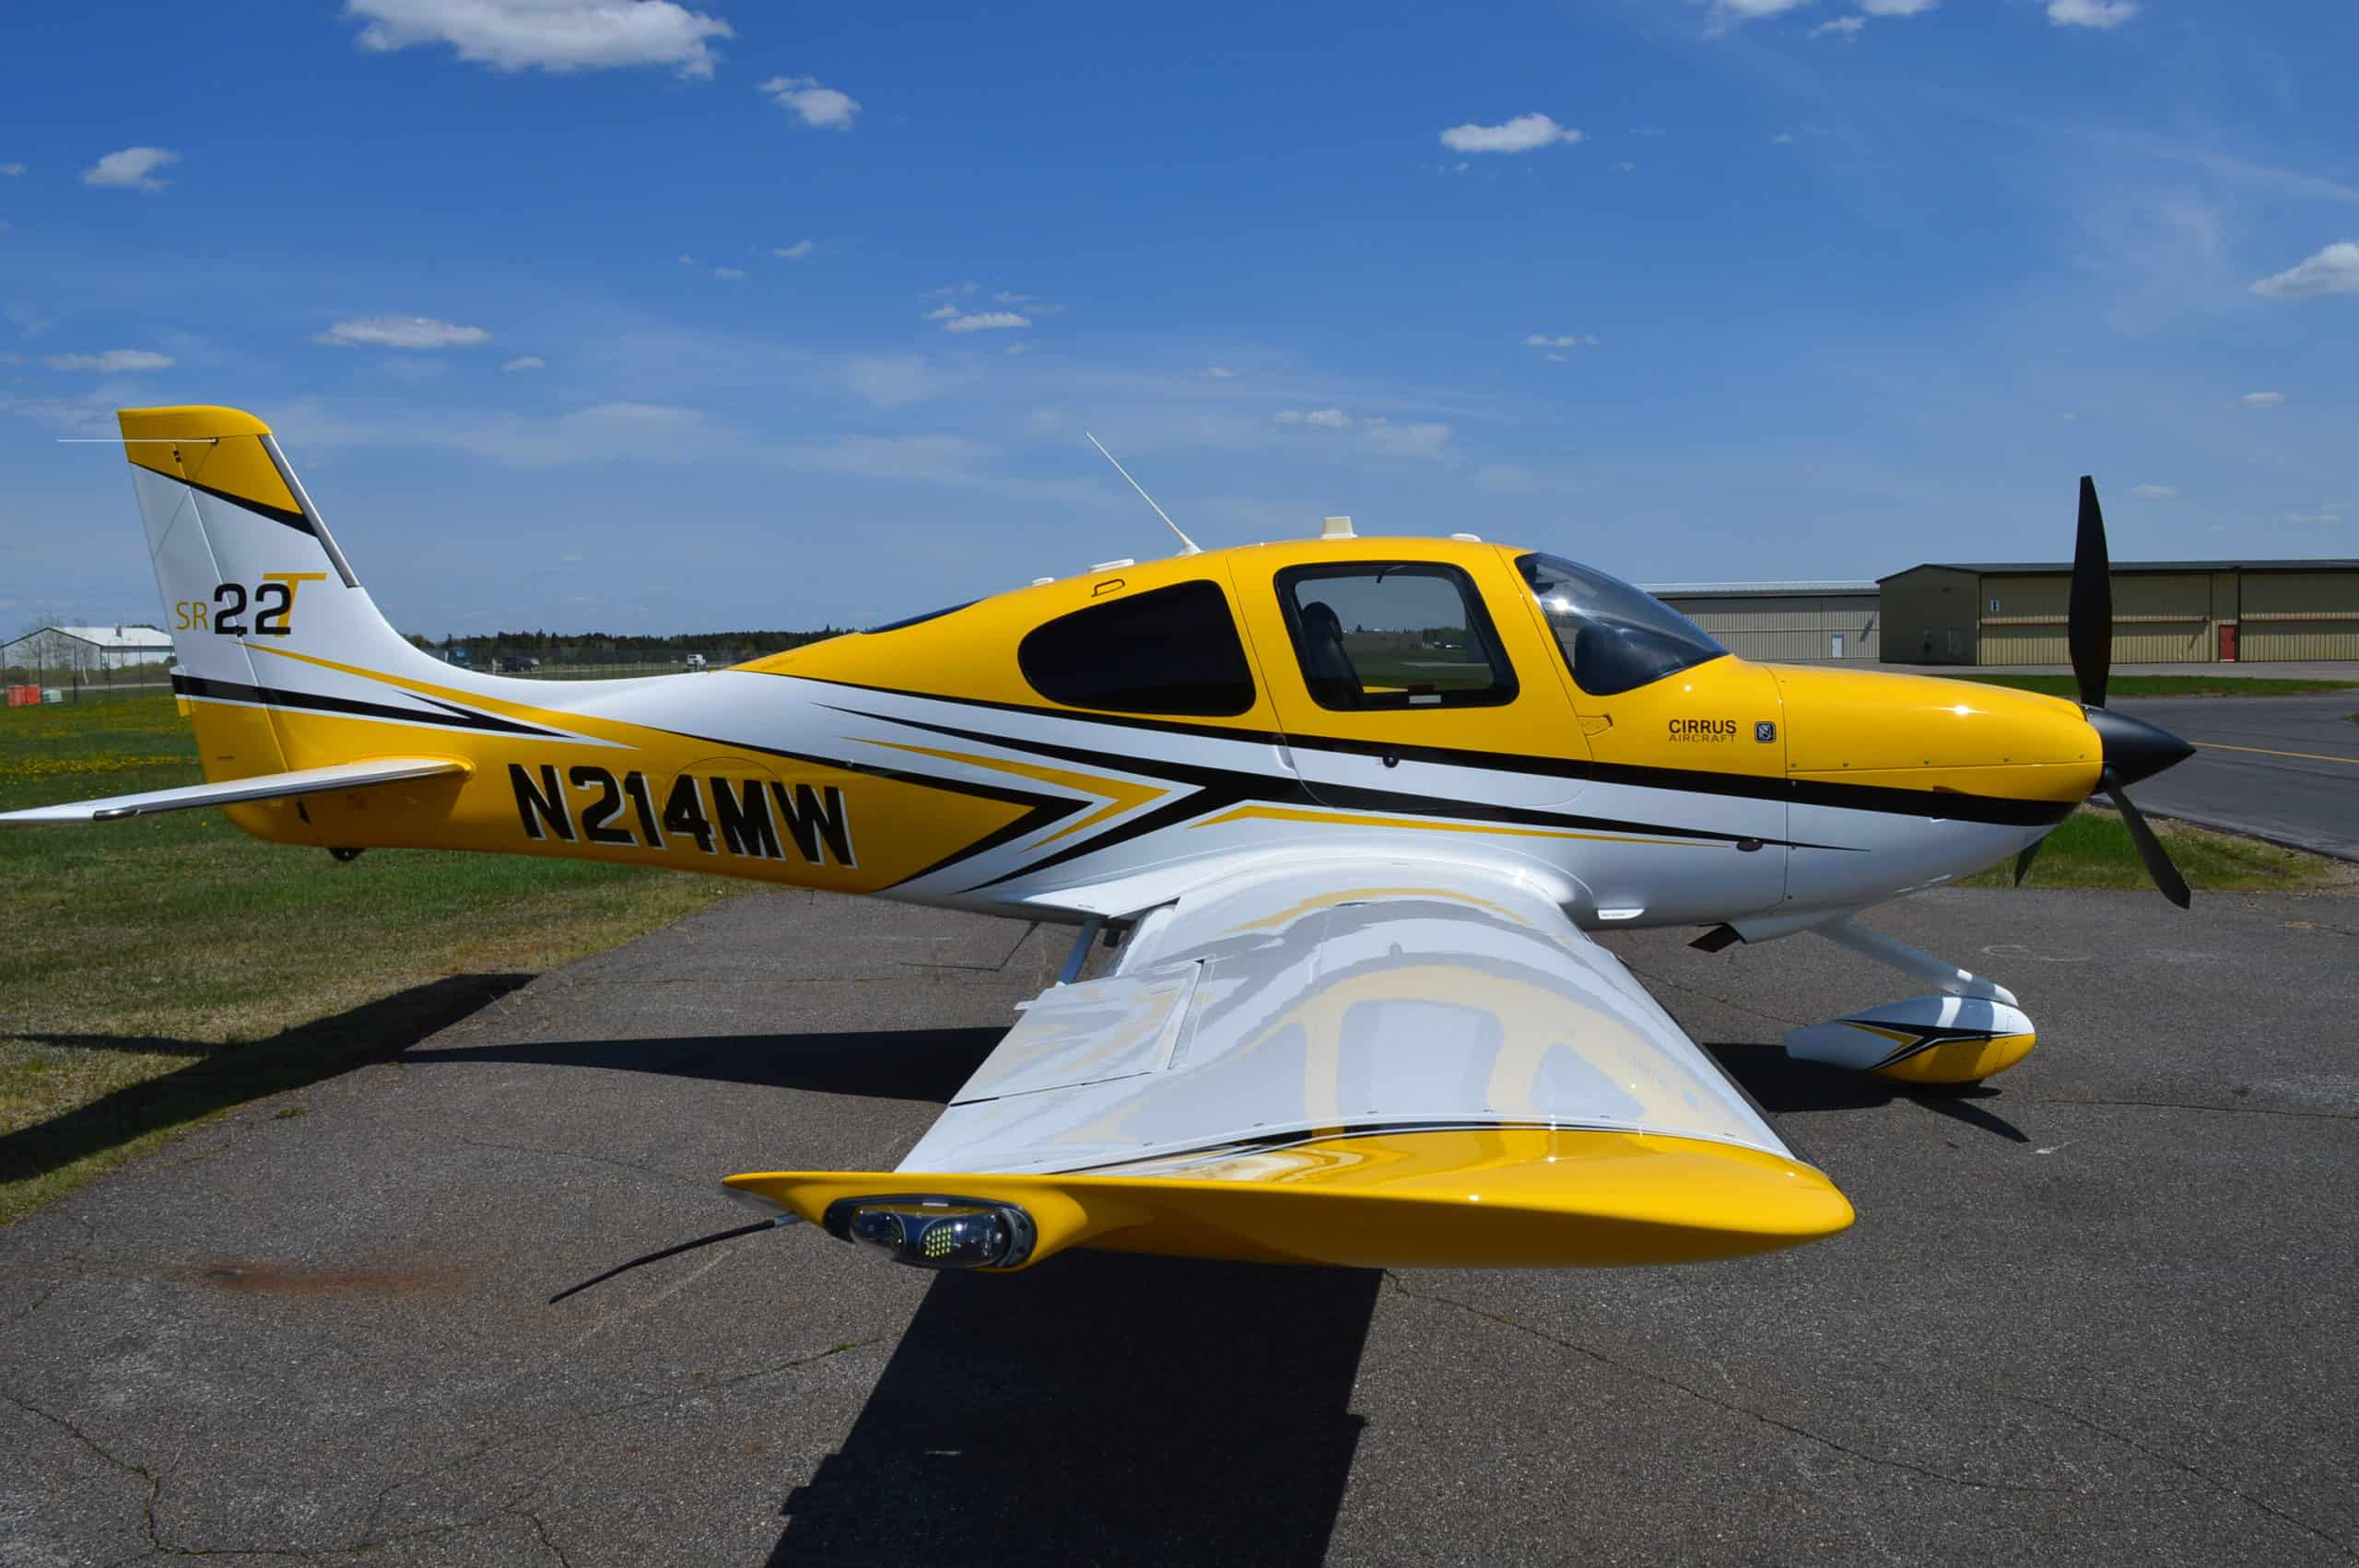 sideview refinished airplane grey and yellow colors